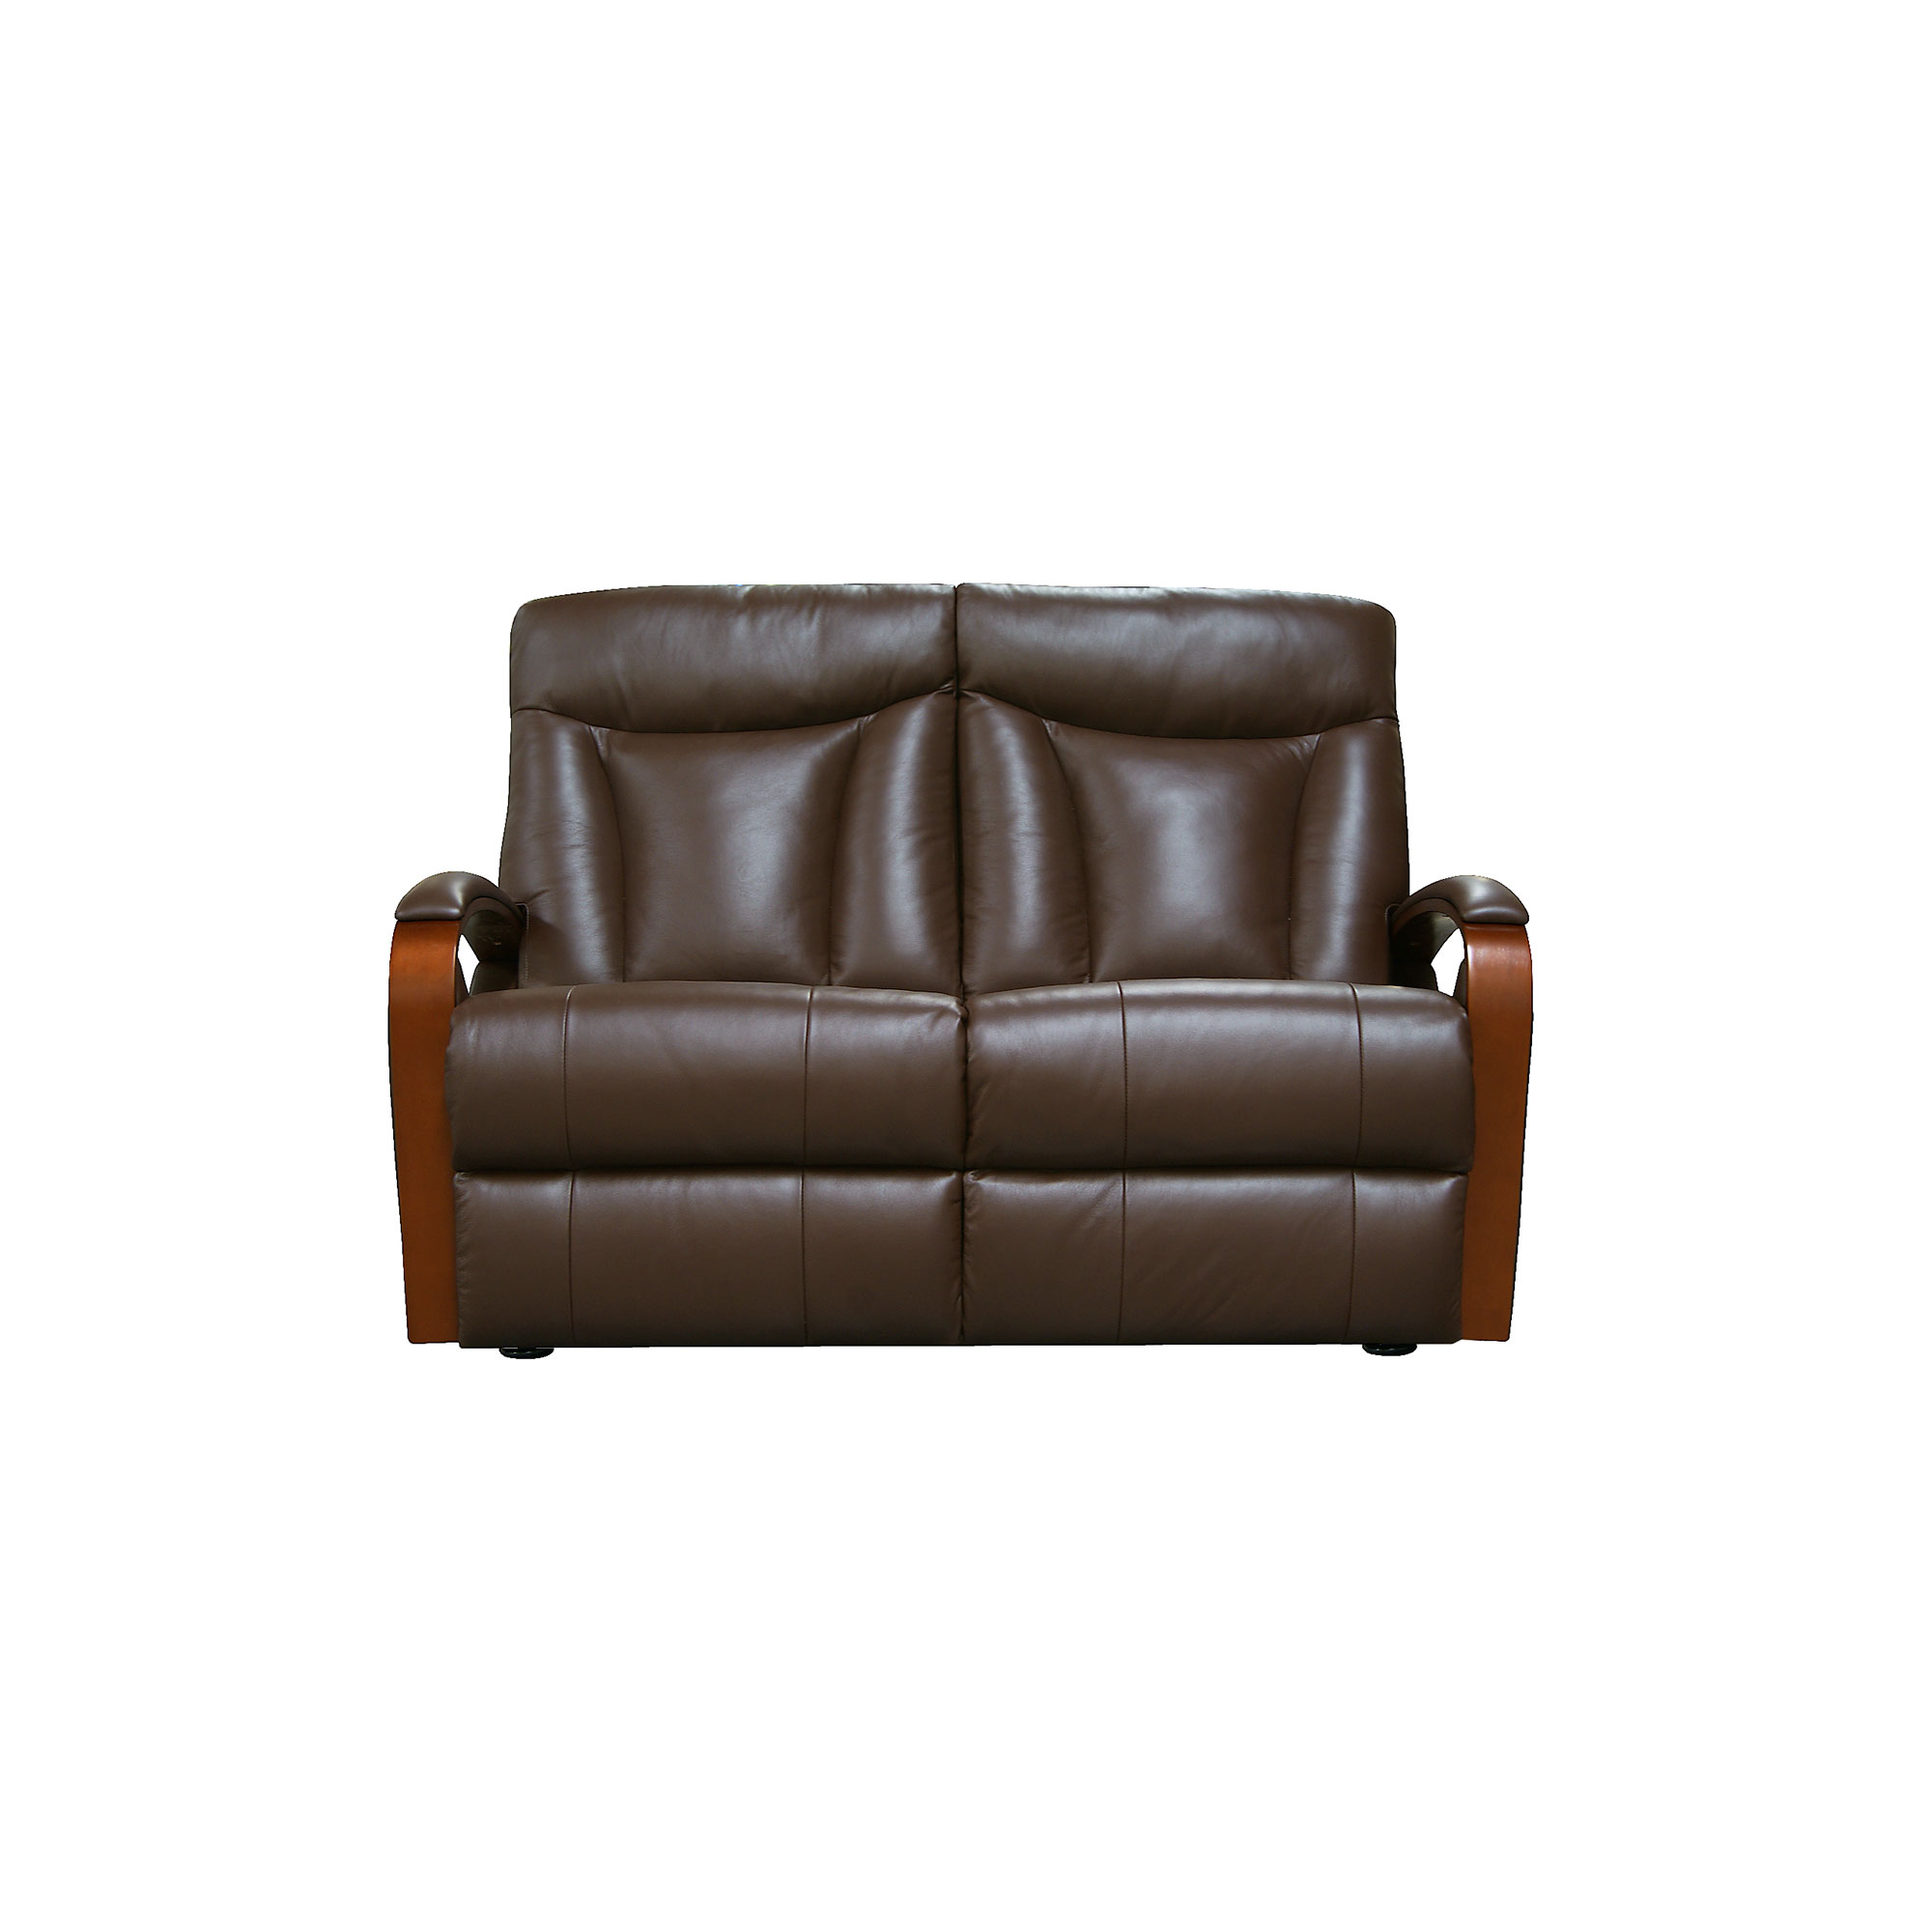 Dayton Recliner Moran Furniture